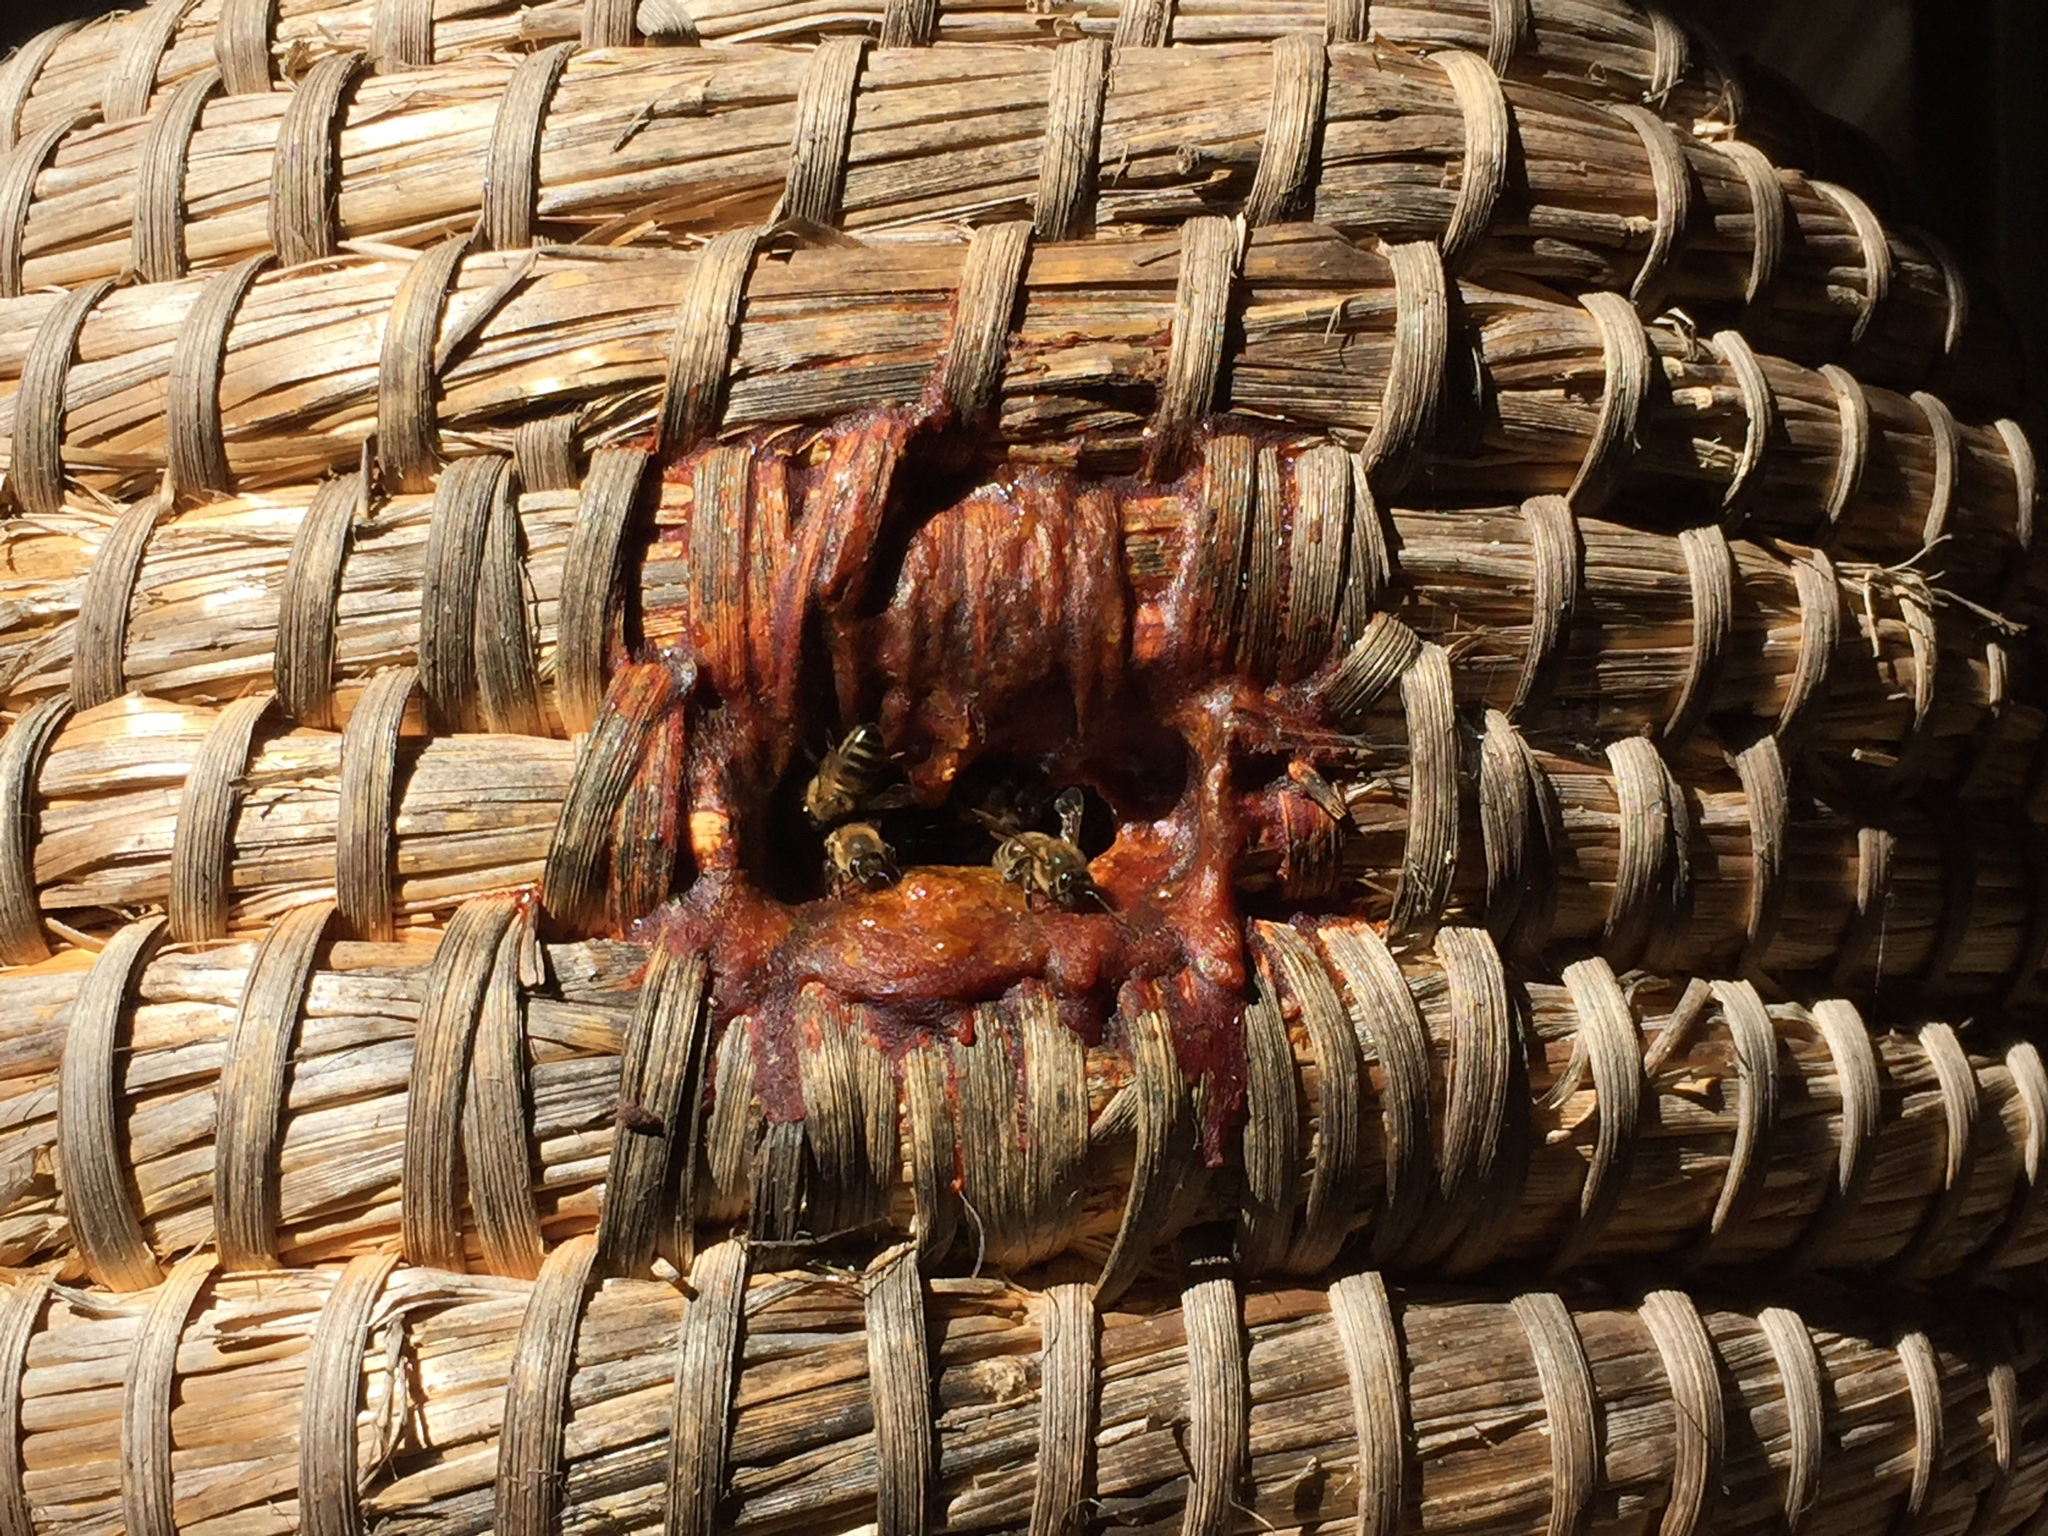 A beautiful example of a well propolized entrance to a skep hive I visited in England.